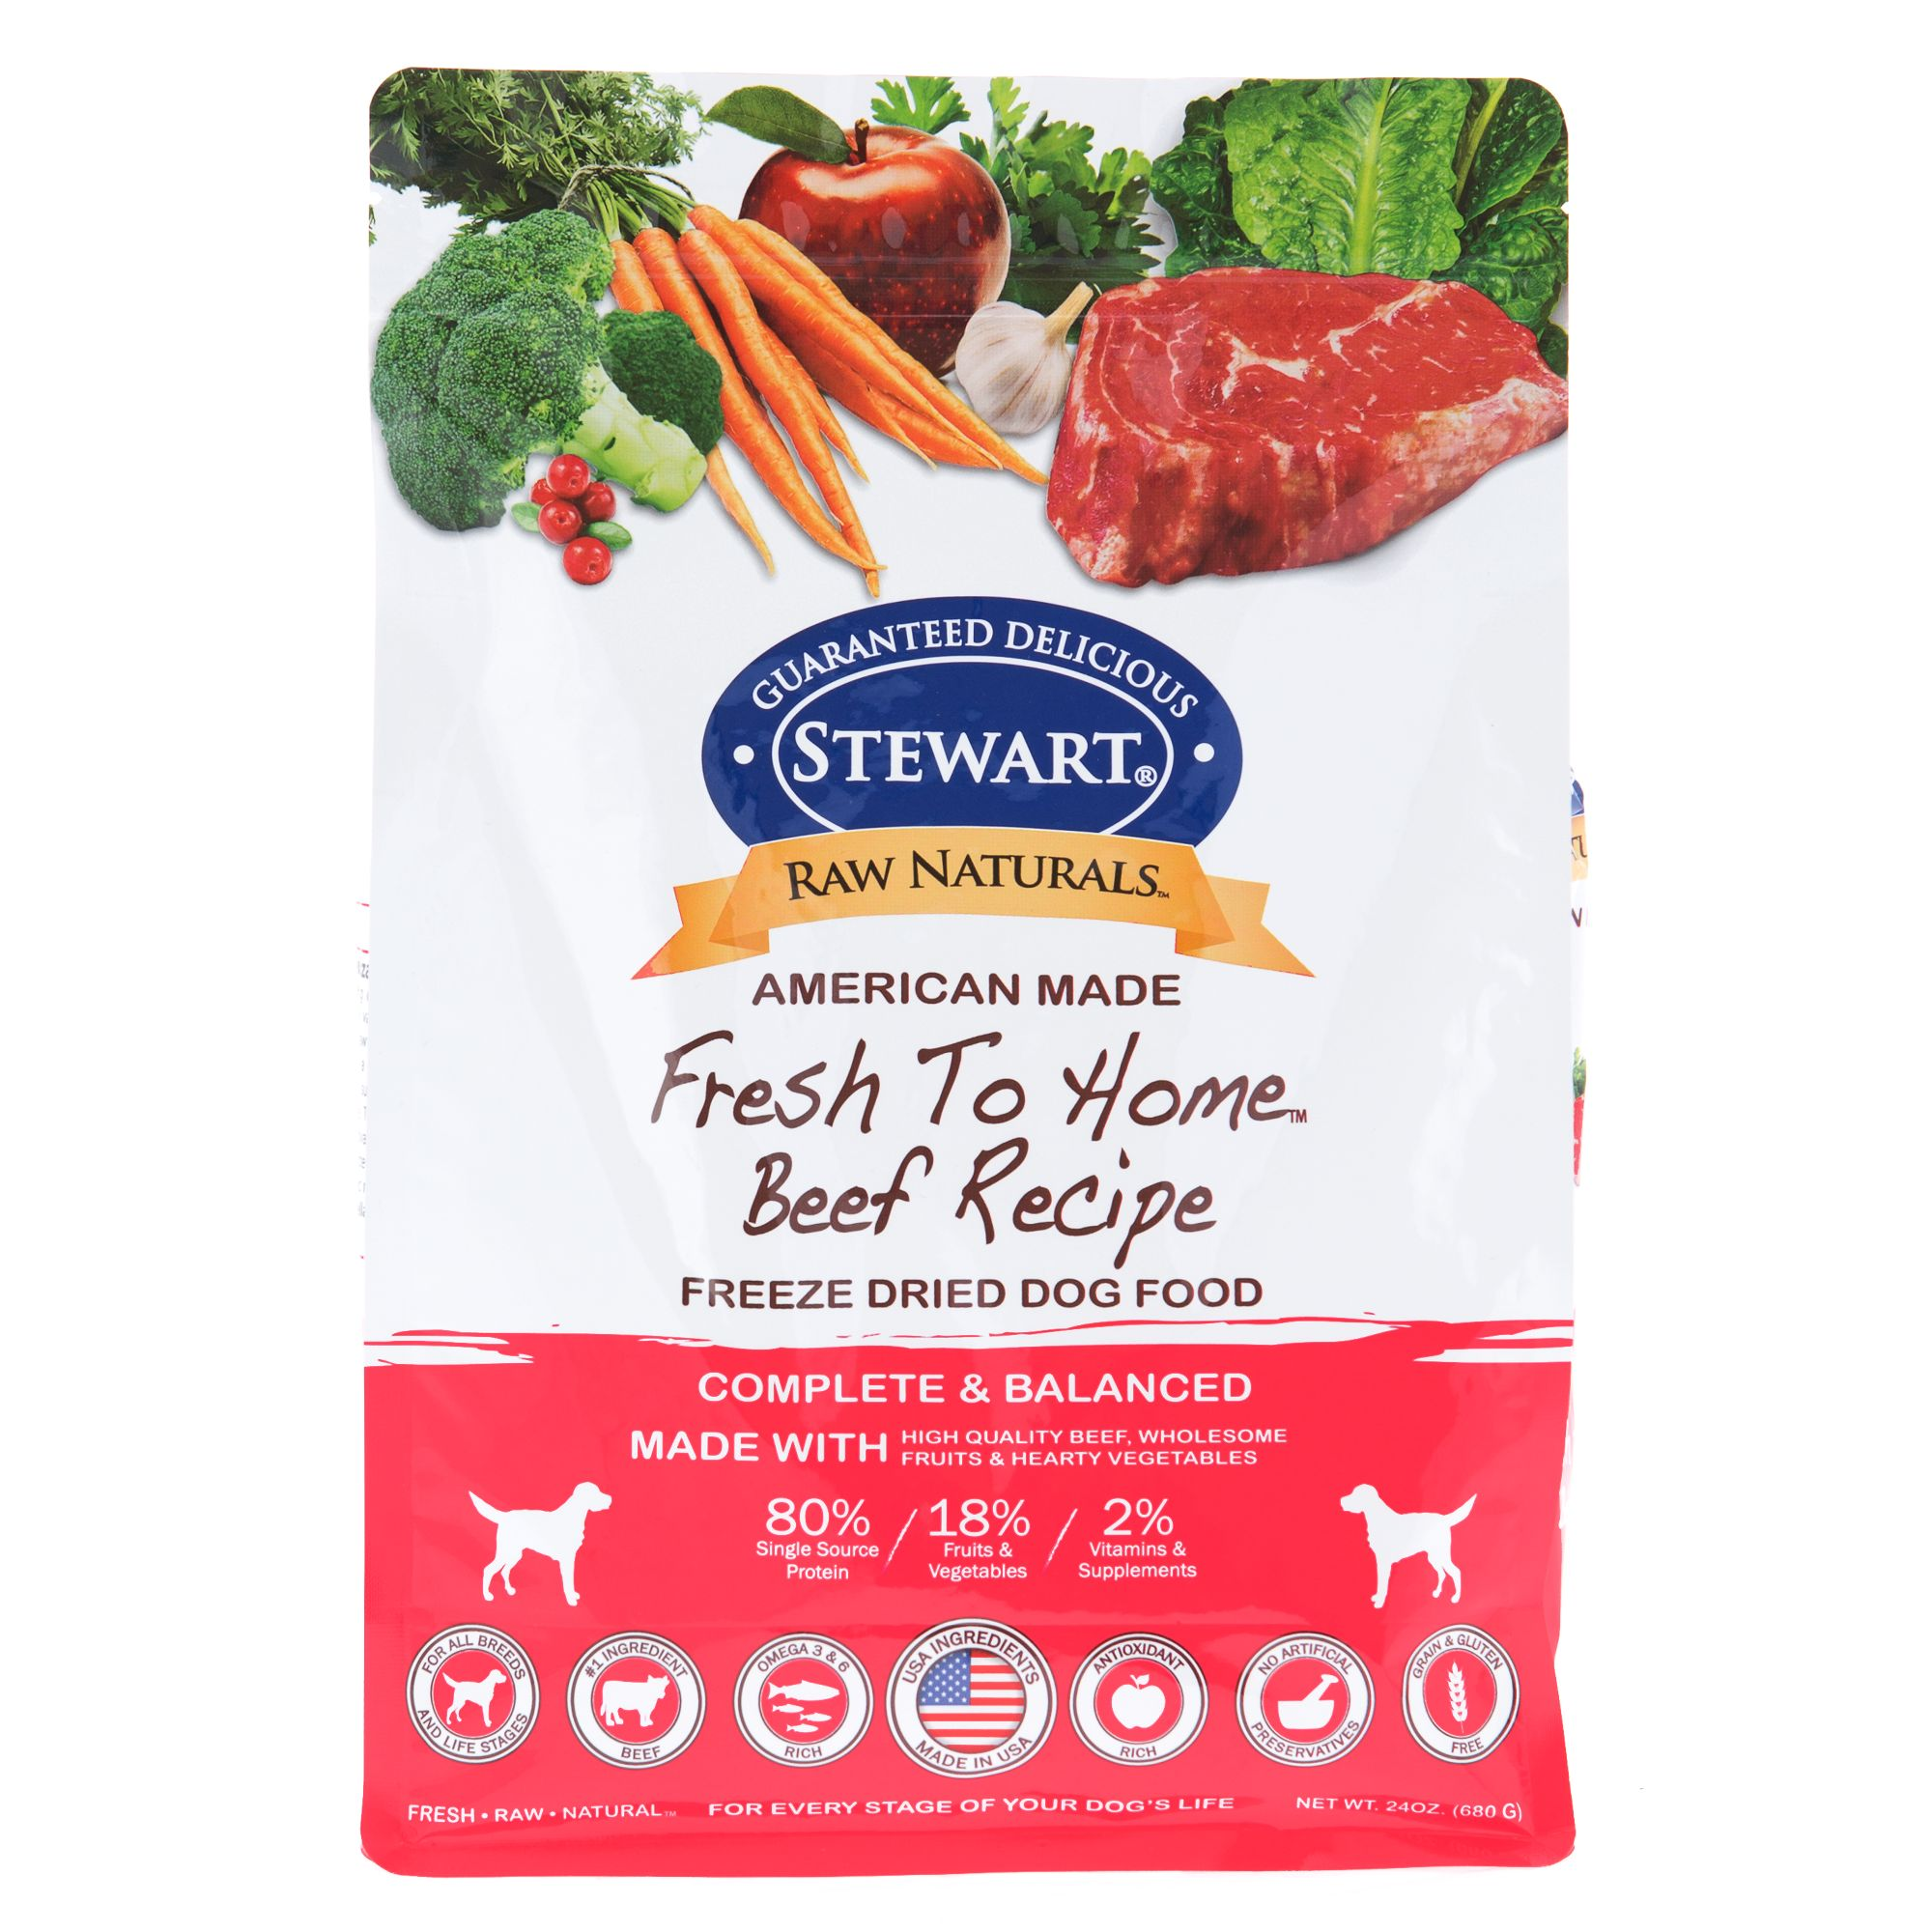 Stewart Raw Naturals Dog Food - Freeze Dried, Beef size: 24 Oz 5260677